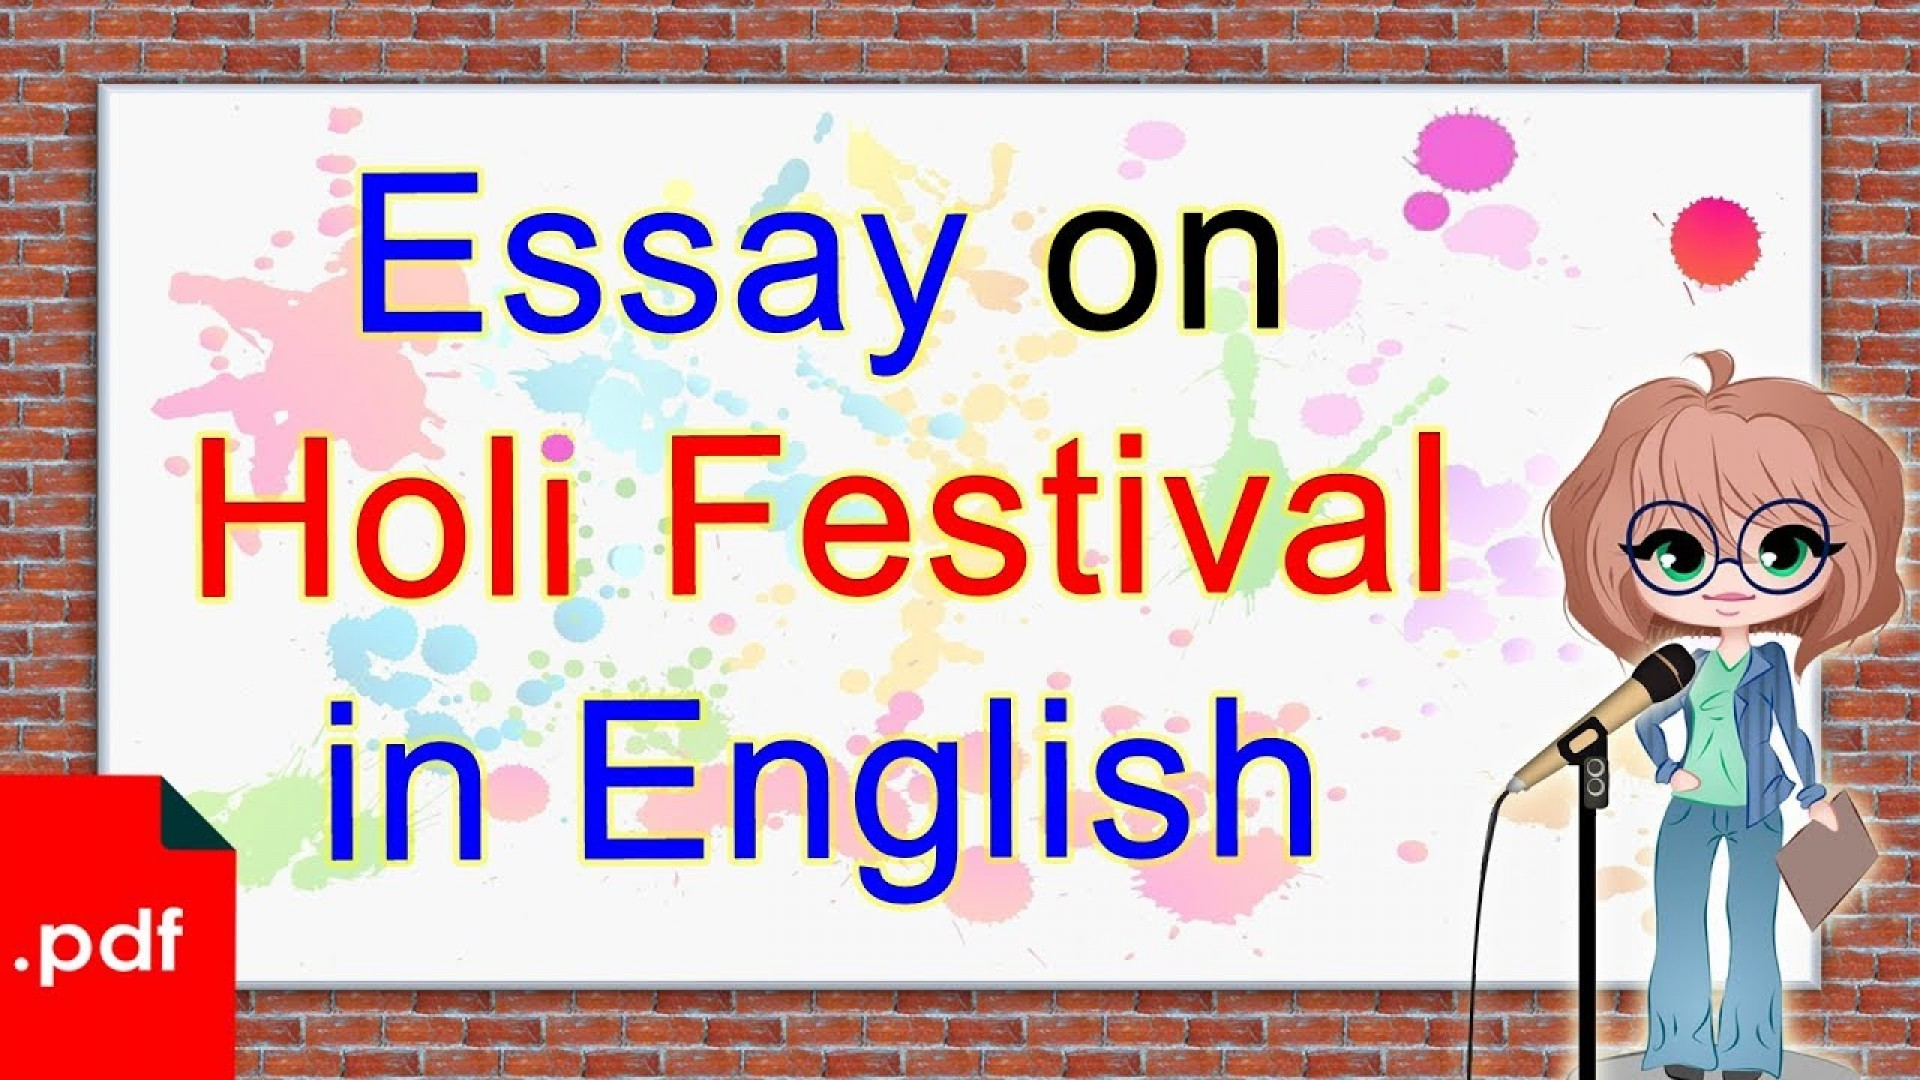 007 Essay Example Holi In English Breathtaking For Class 1 10 Lines Easy 1920